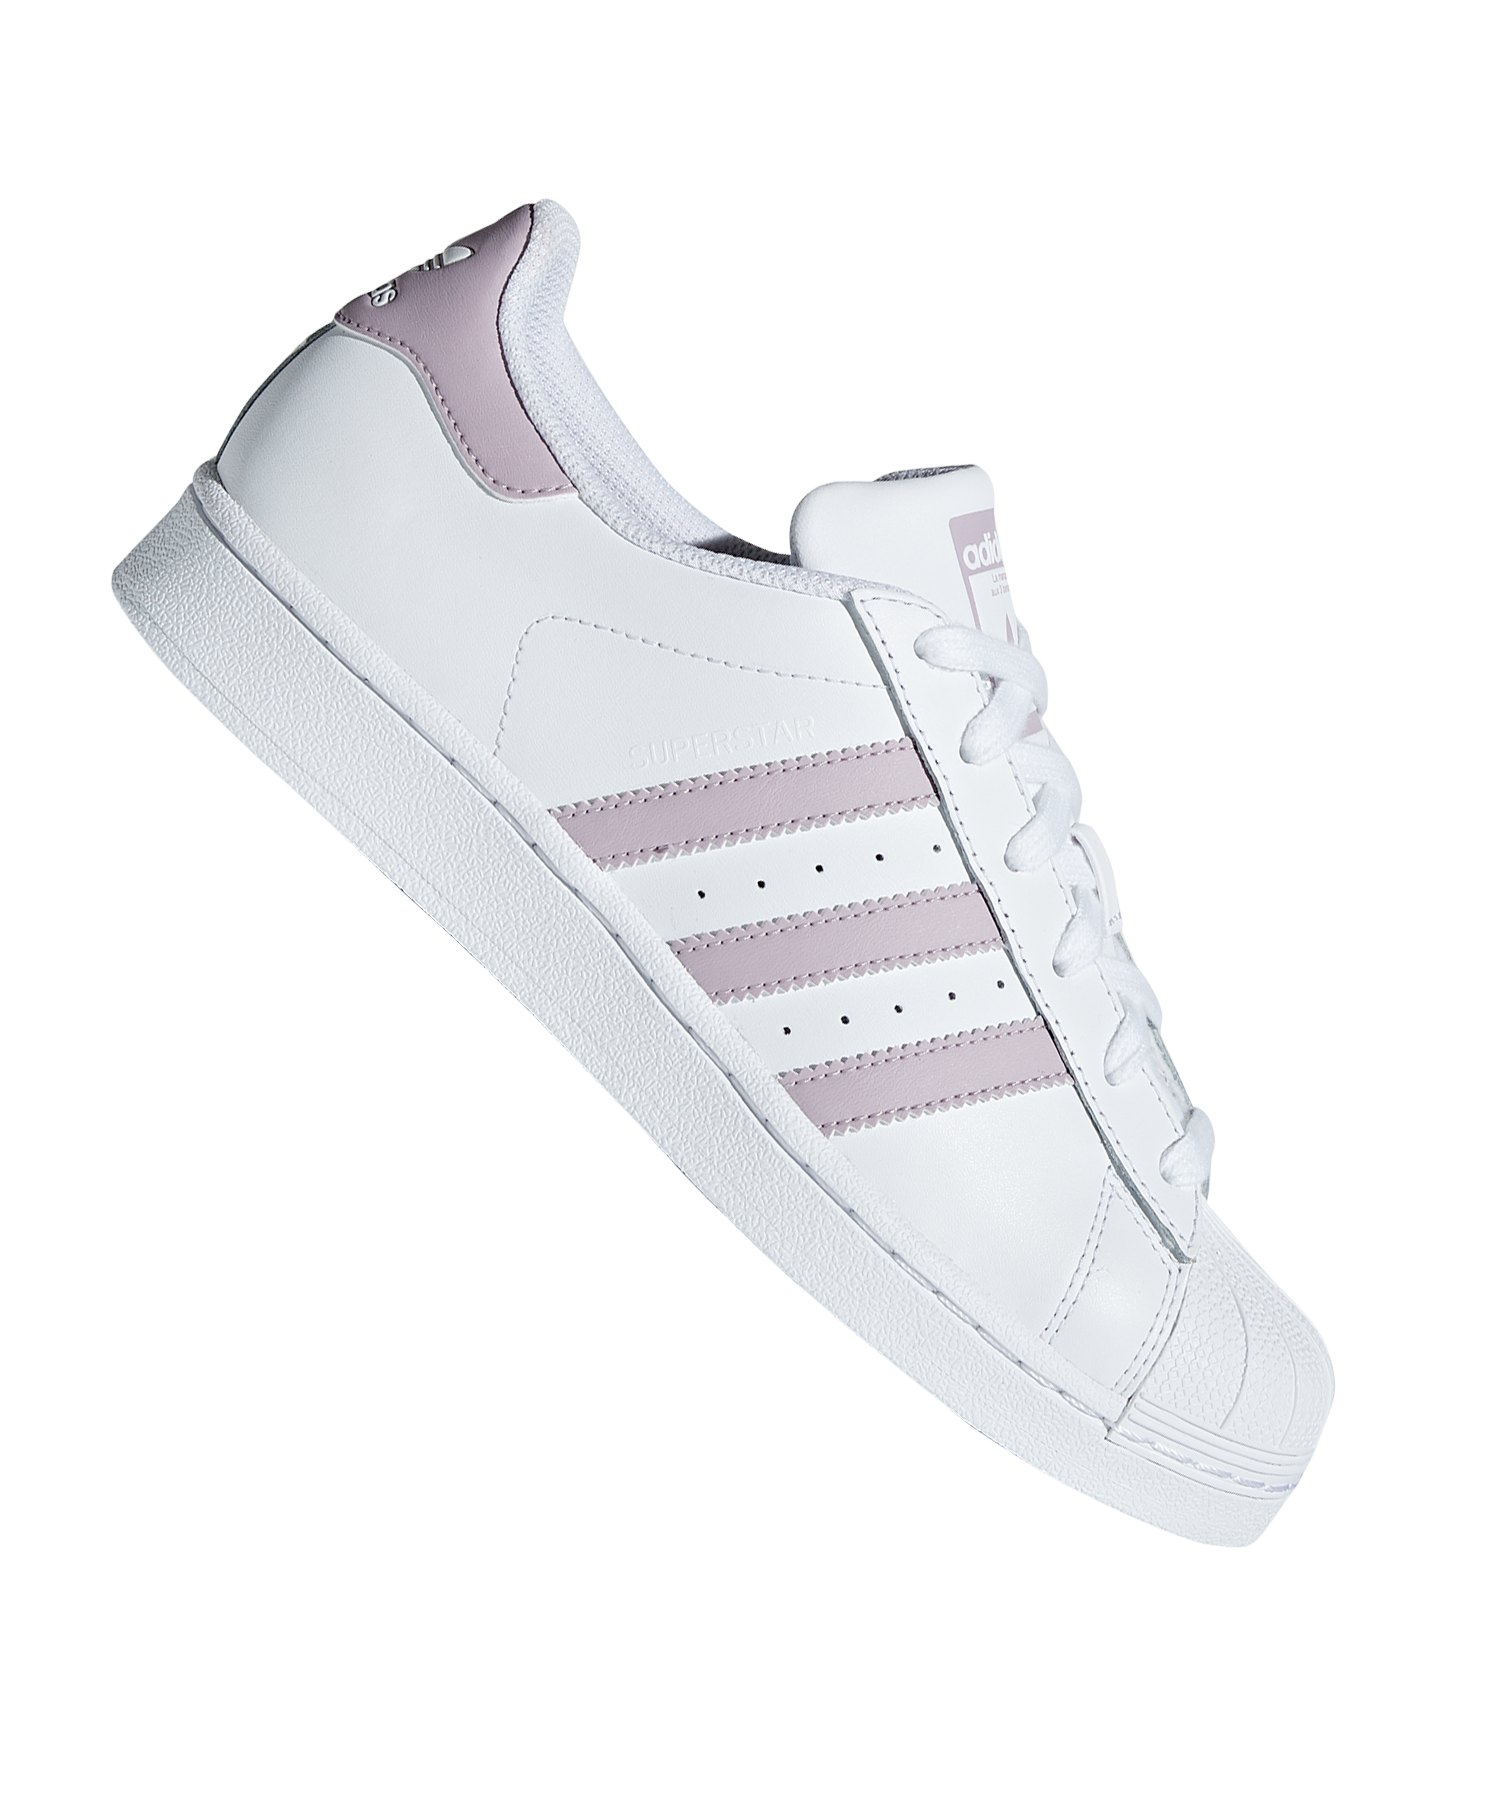 c222c6fb8691ba adidas Originals Superstar Sneaker Damen Weiss - weiss